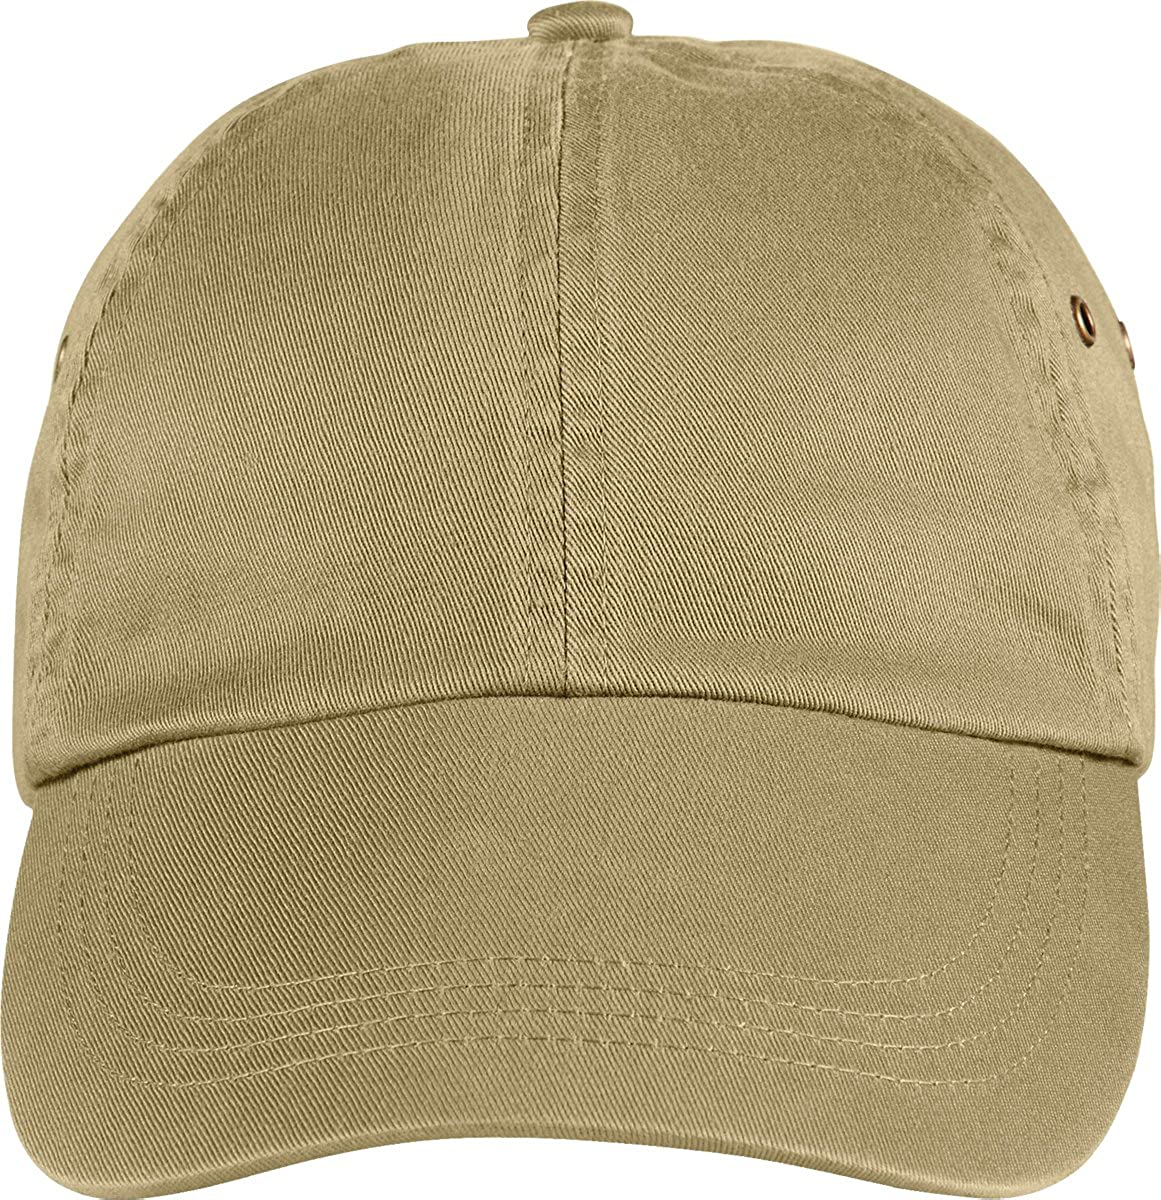 Anvil Unisex Brushed Twill Cap Black One Size 136